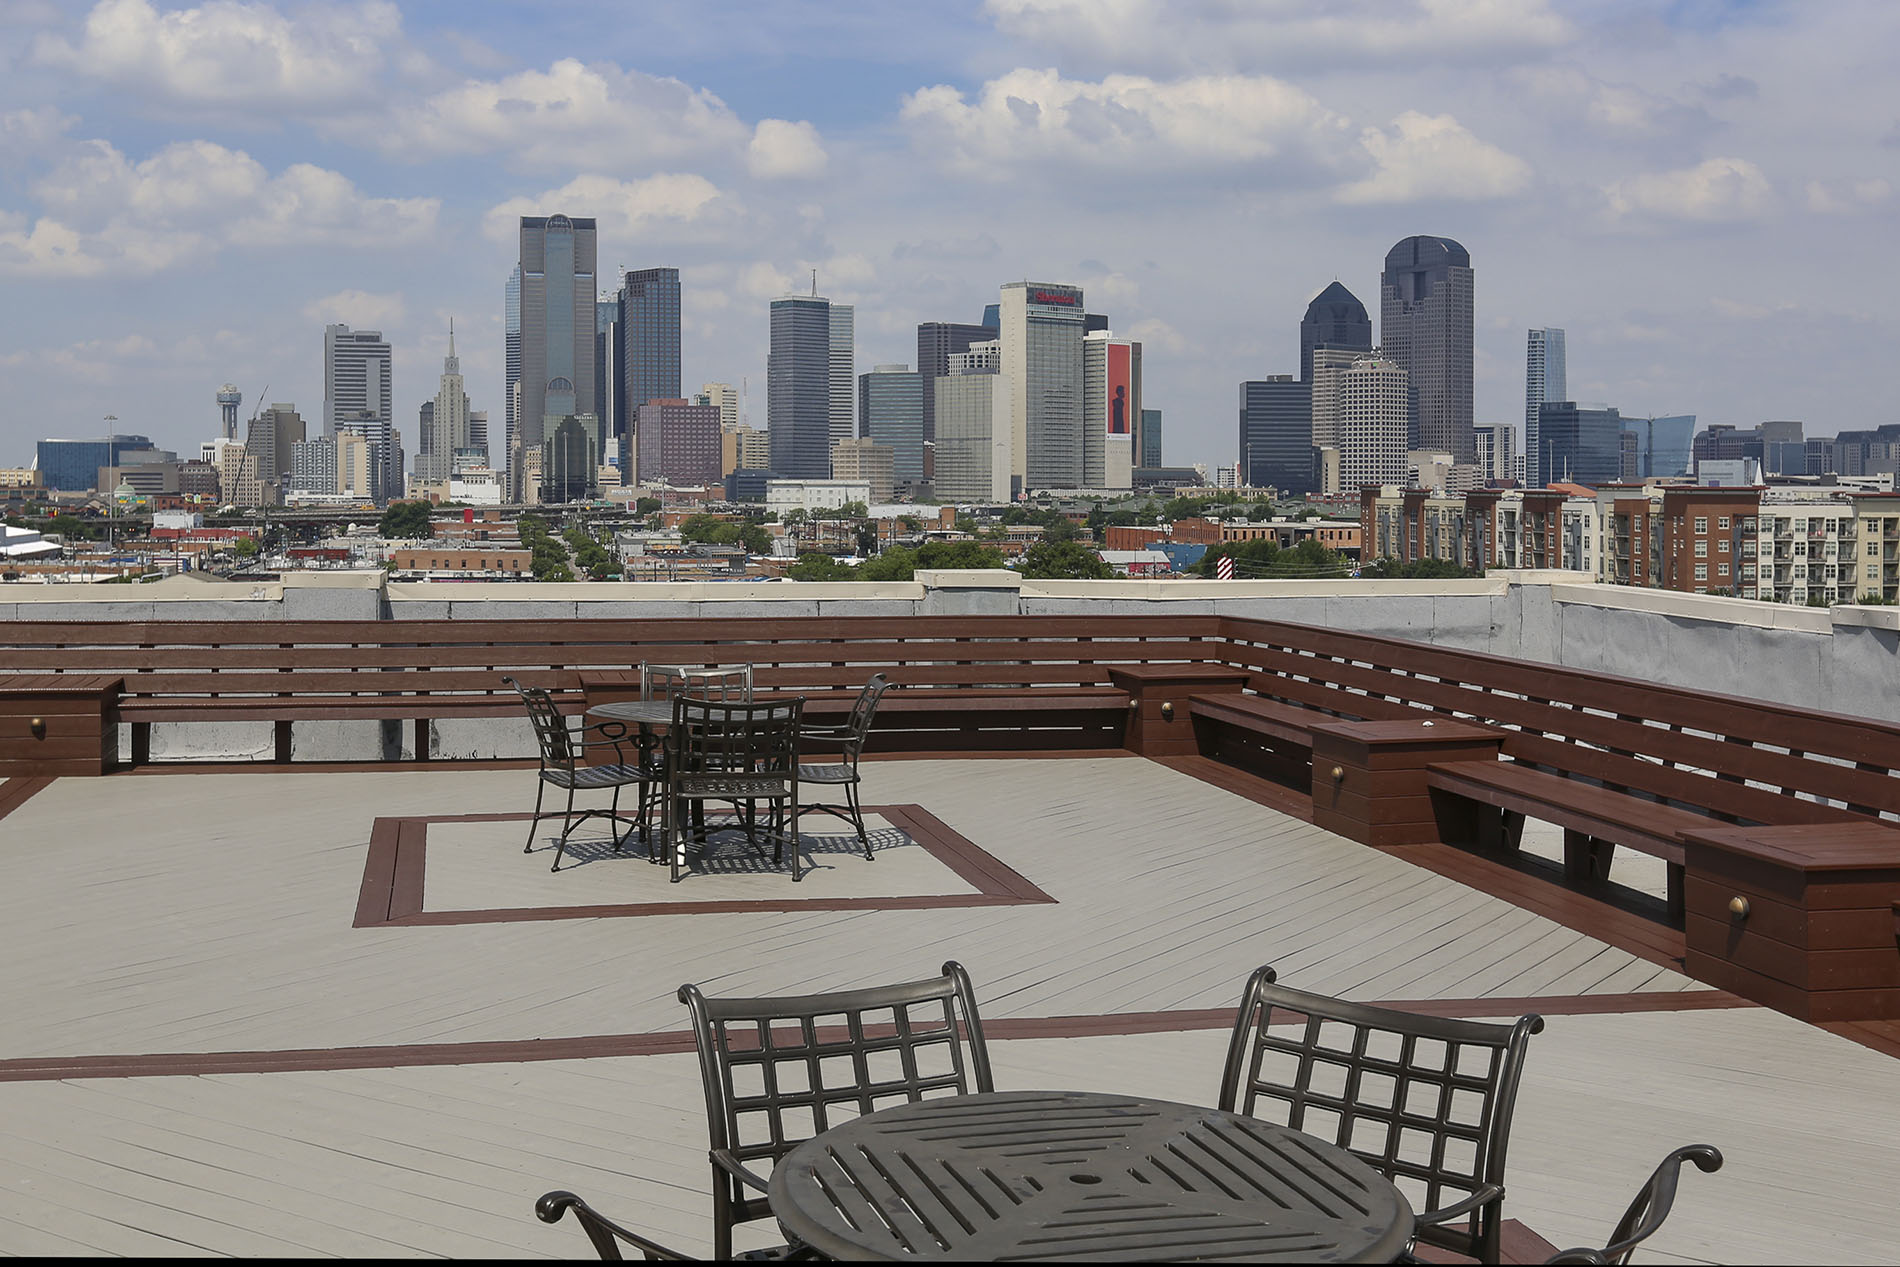 3200 Main Lofts Rooftop Patio View At Deep Ellum Lofts, Dallas, Texas, TX